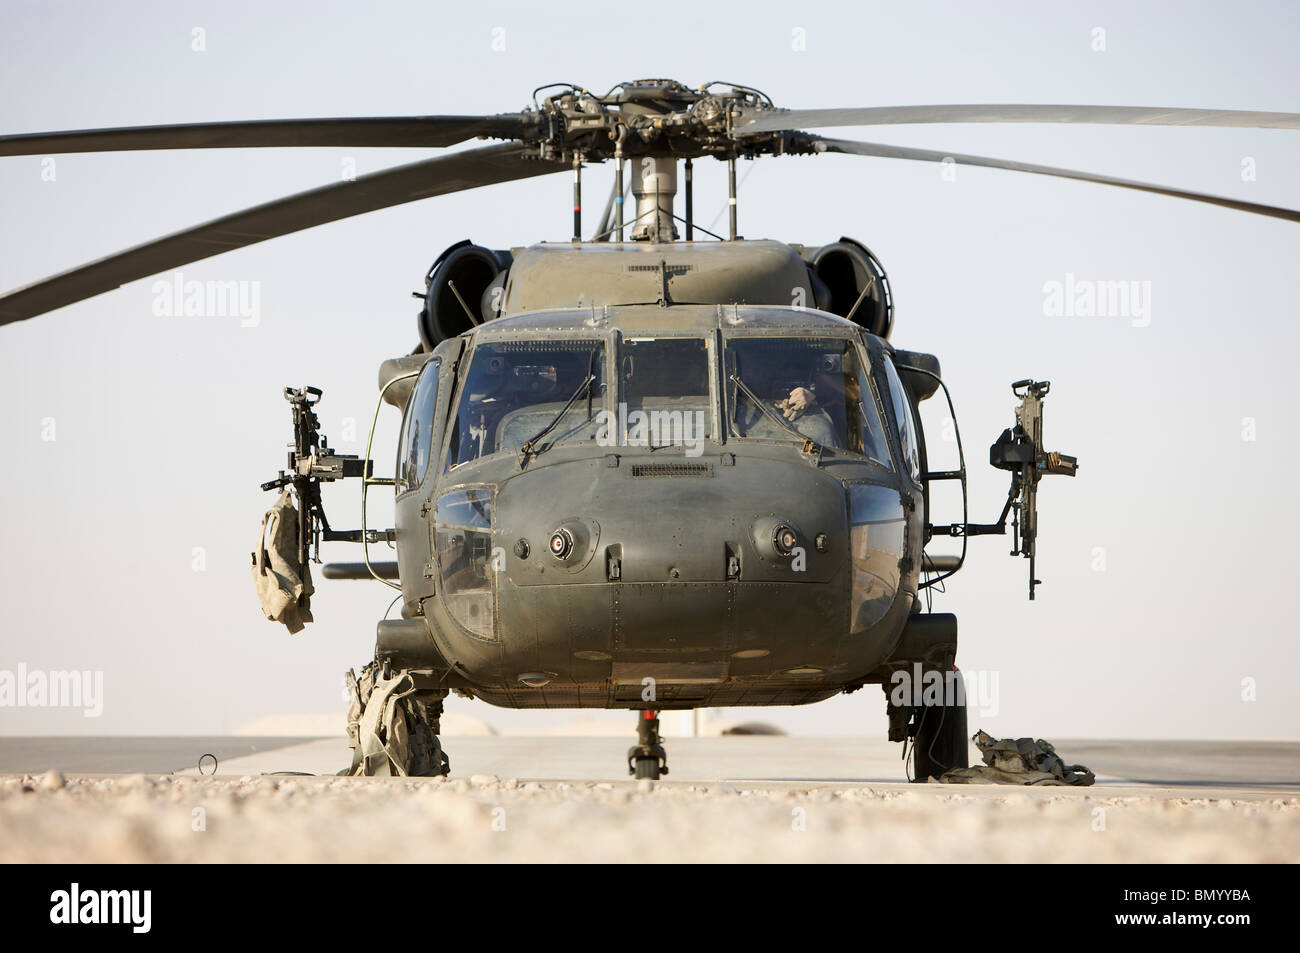 Front view of a UH-60L Black Hawk helicopter. - Stock Image